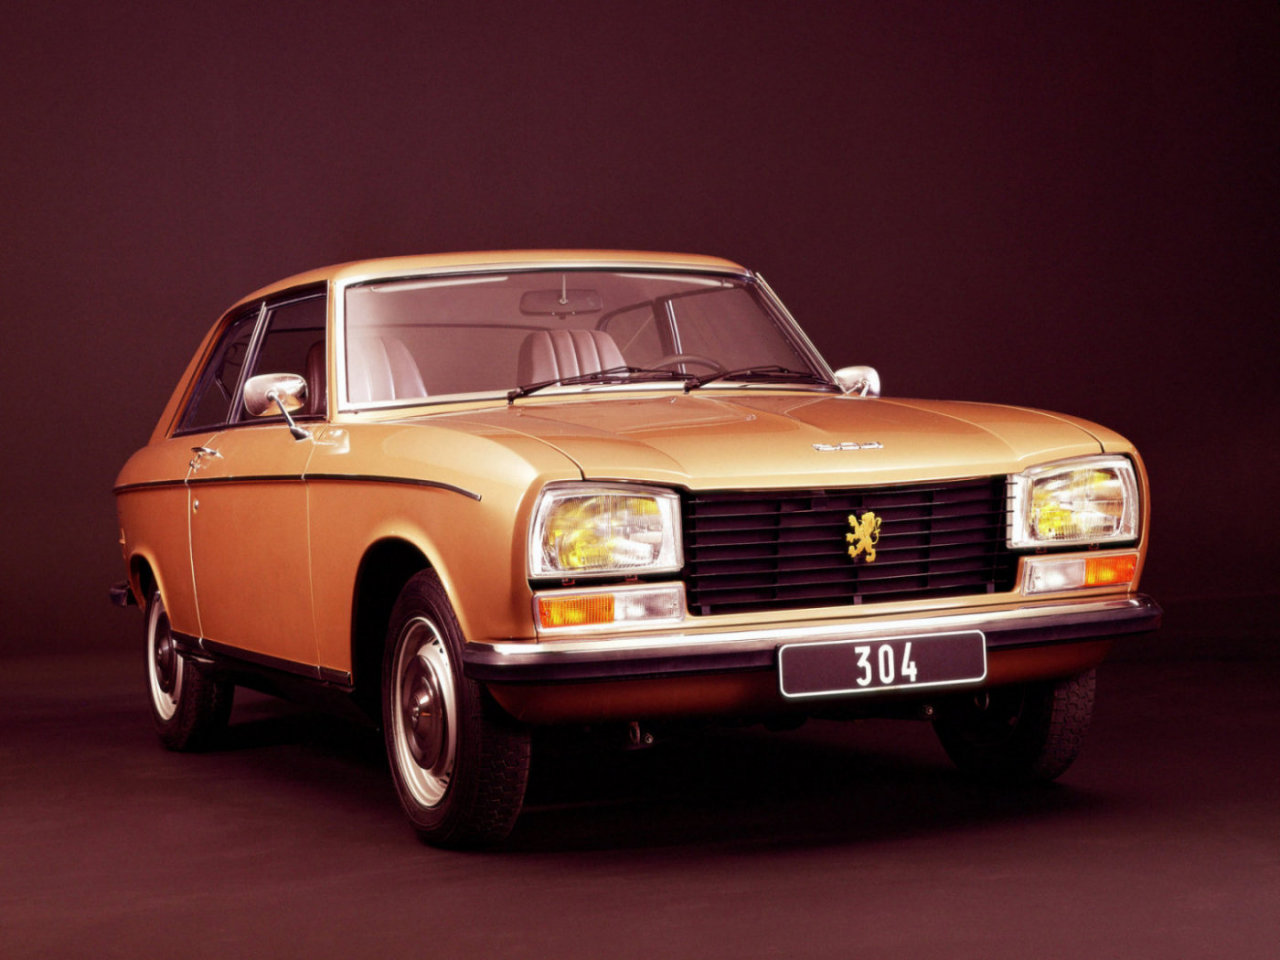 1970 Peugeot 304 Coupe